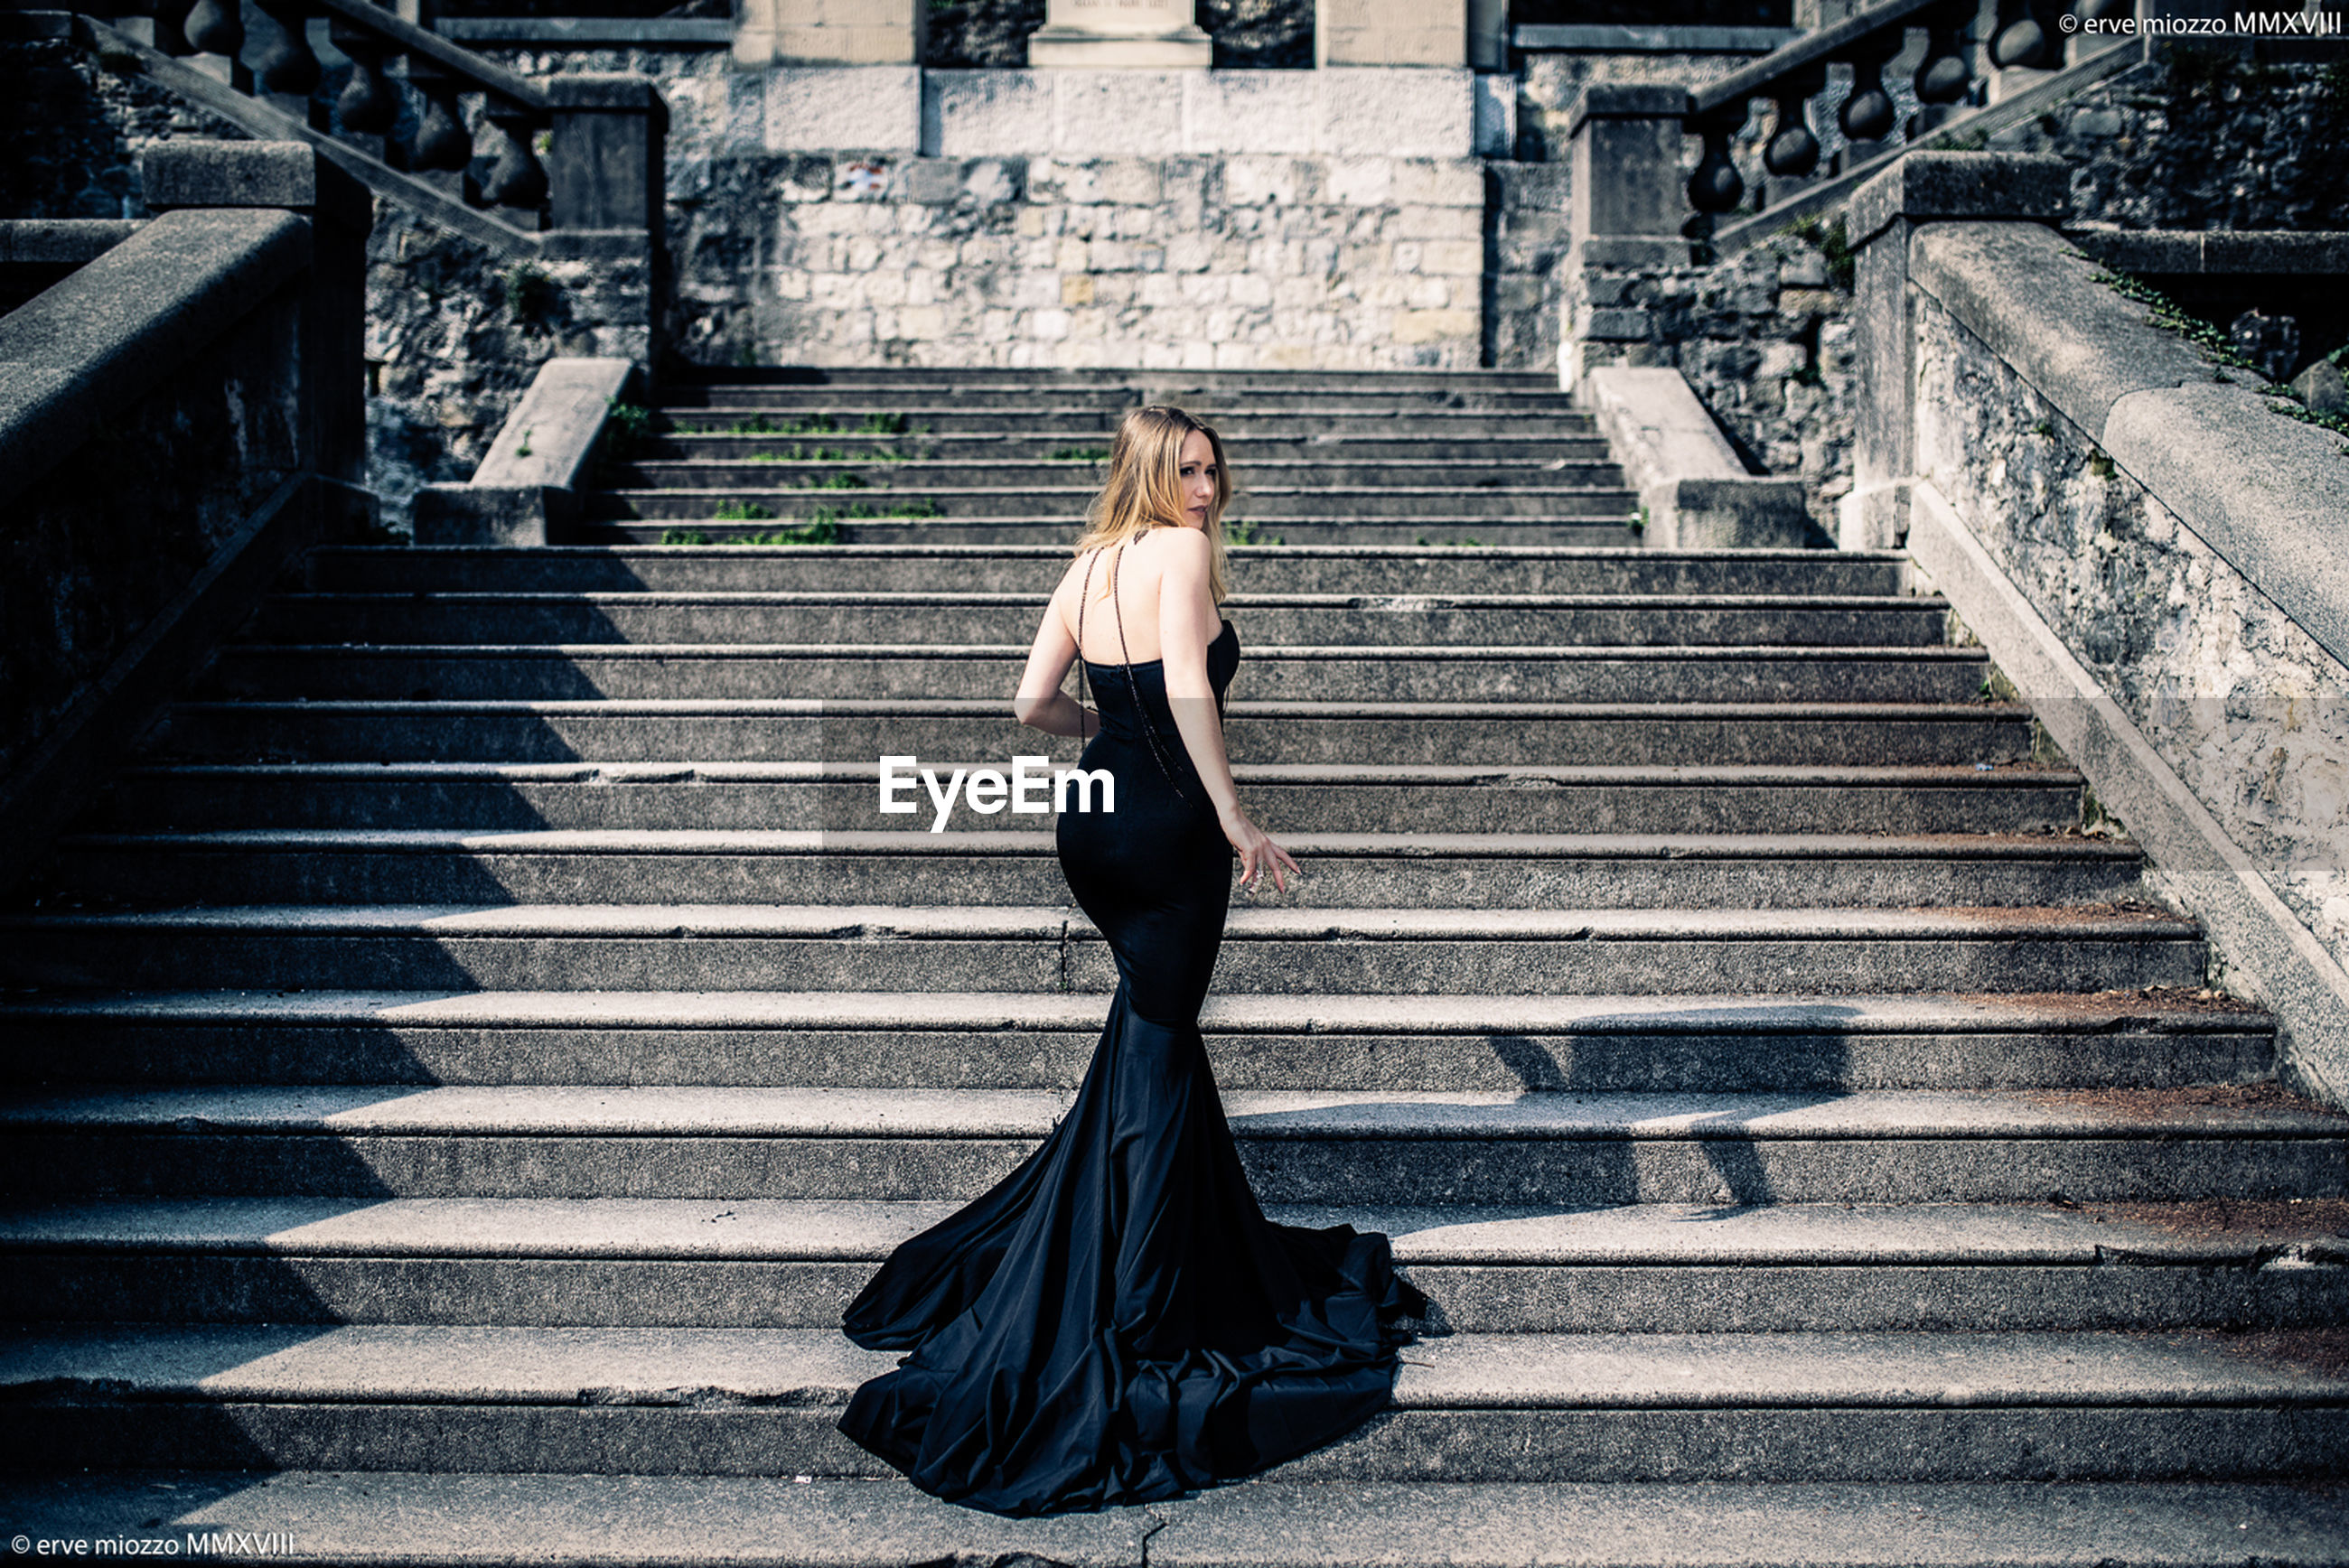 architecture, young adult, one person, staircase, women, clothing, young women, beauty, fashion, full length, adult, steps and staircases, beautiful woman, dress, hair, portrait, formalwear, blond hair, contemplation, hairstyle